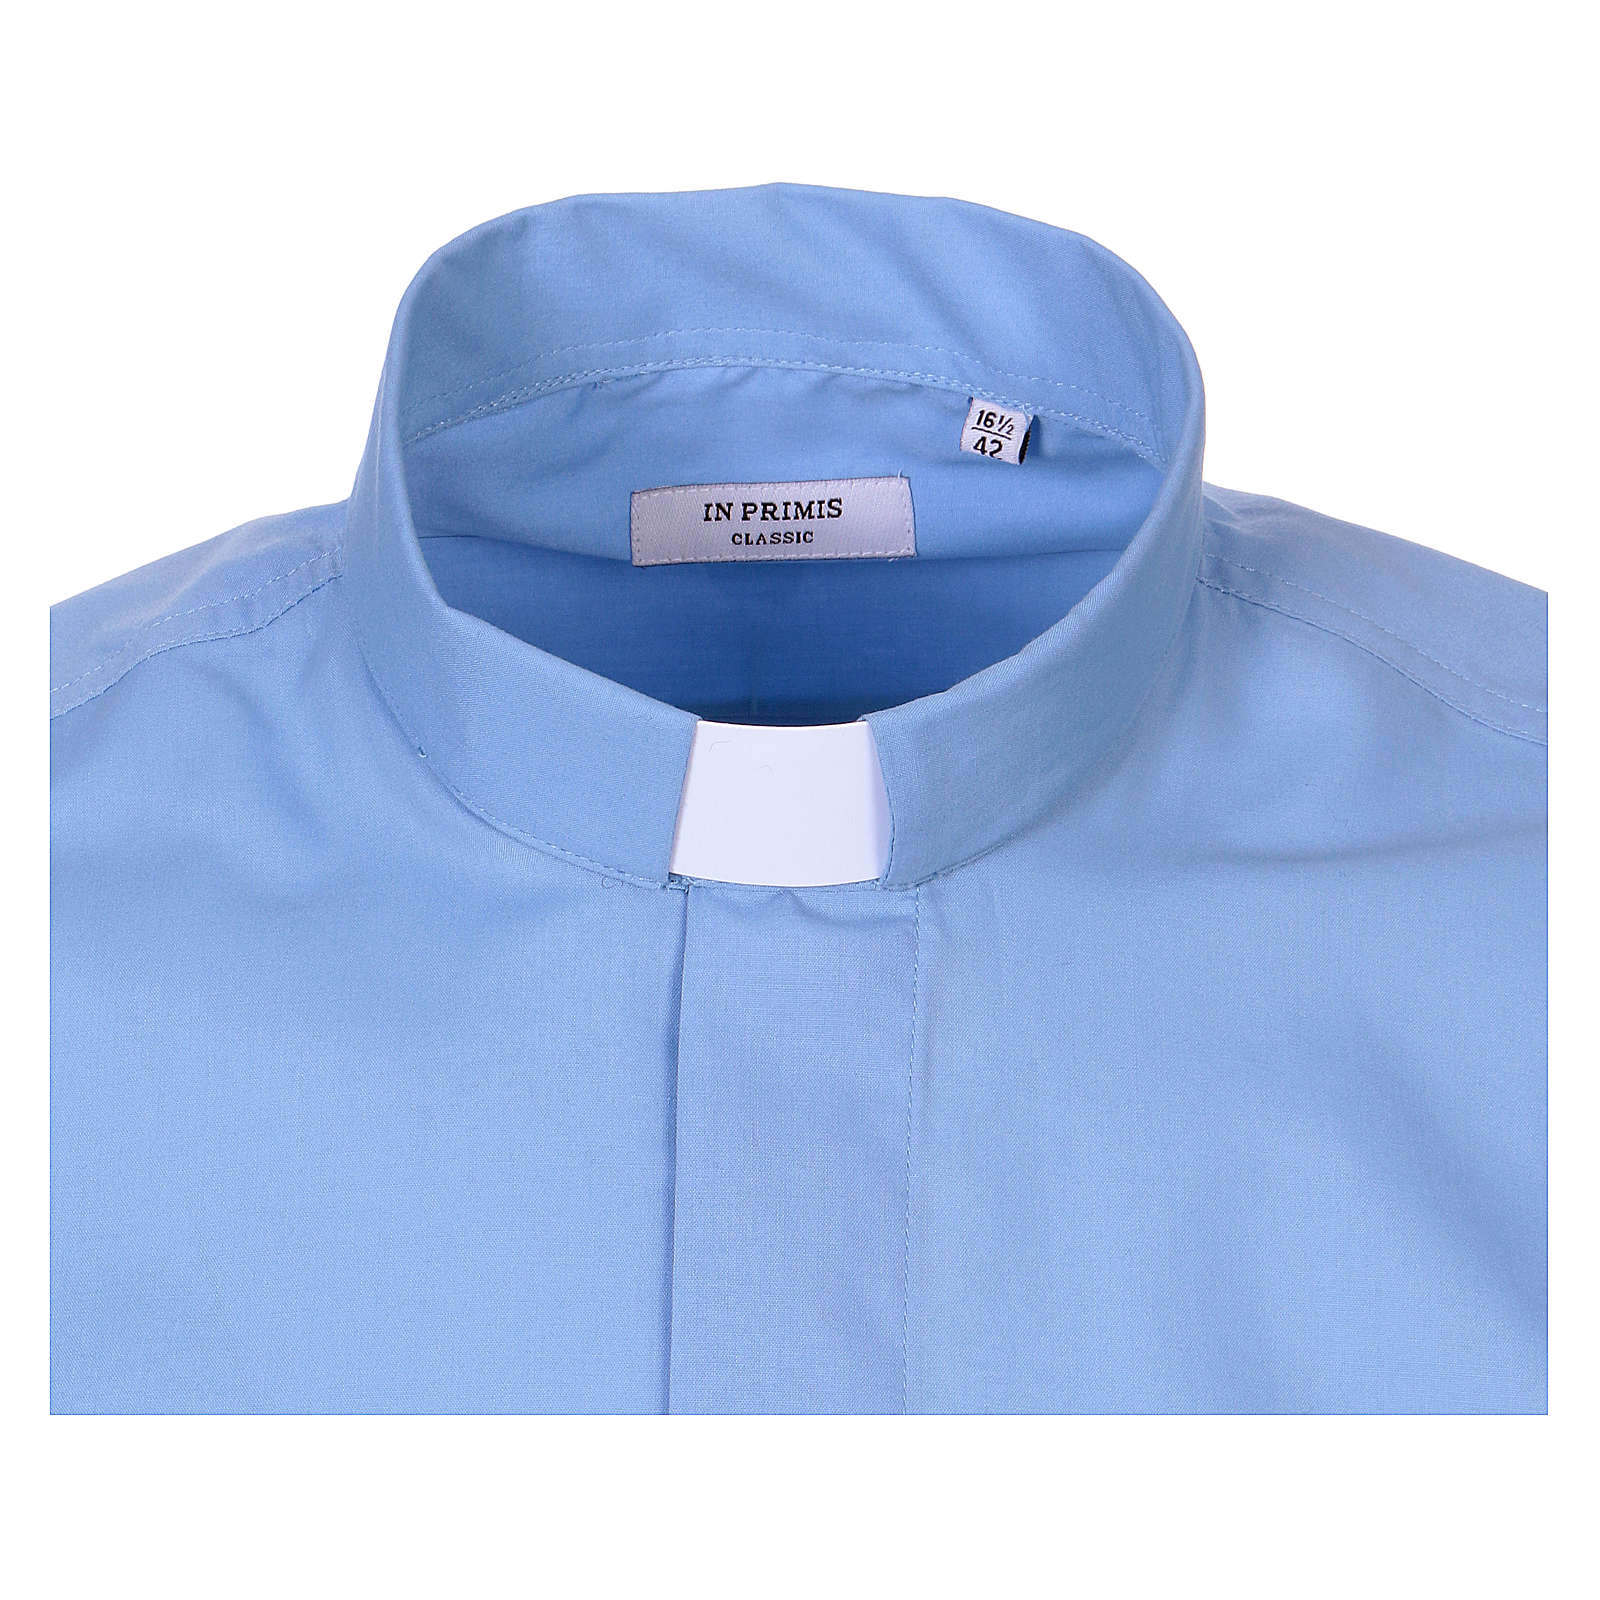 Long-sleeved clergy shirt in sky blue cotton blend In Primis 4